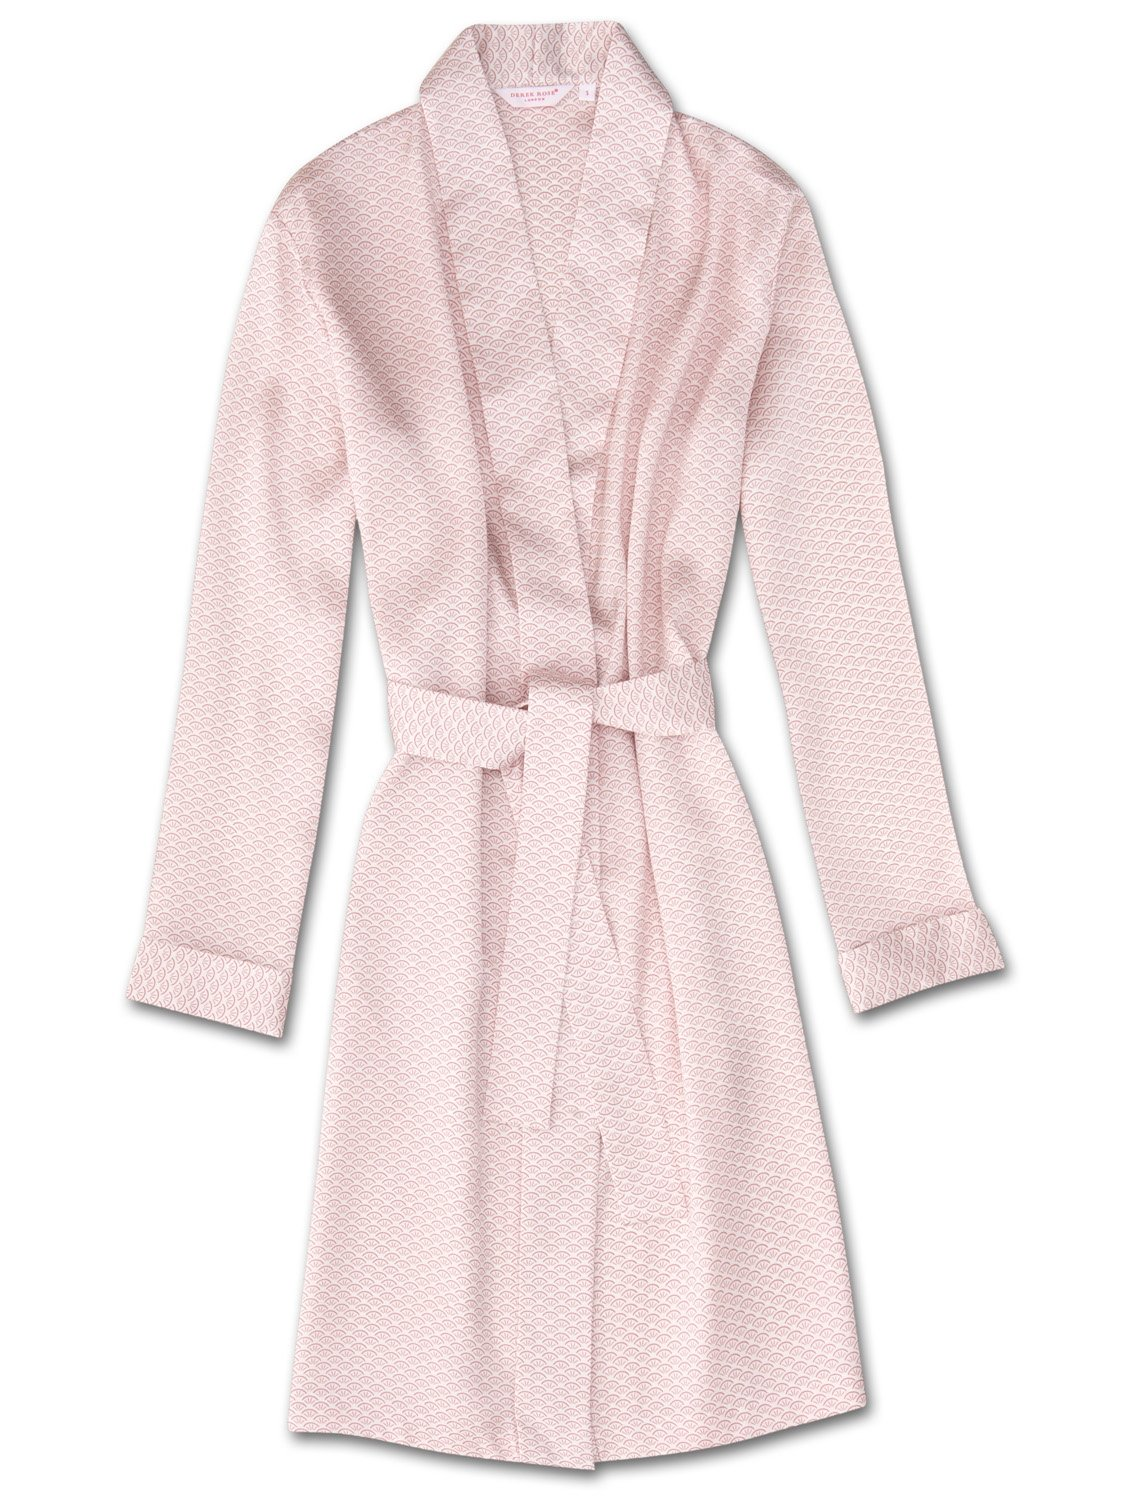 Women's Dressing Gown Brindisi 26 Pure Silk Satin White